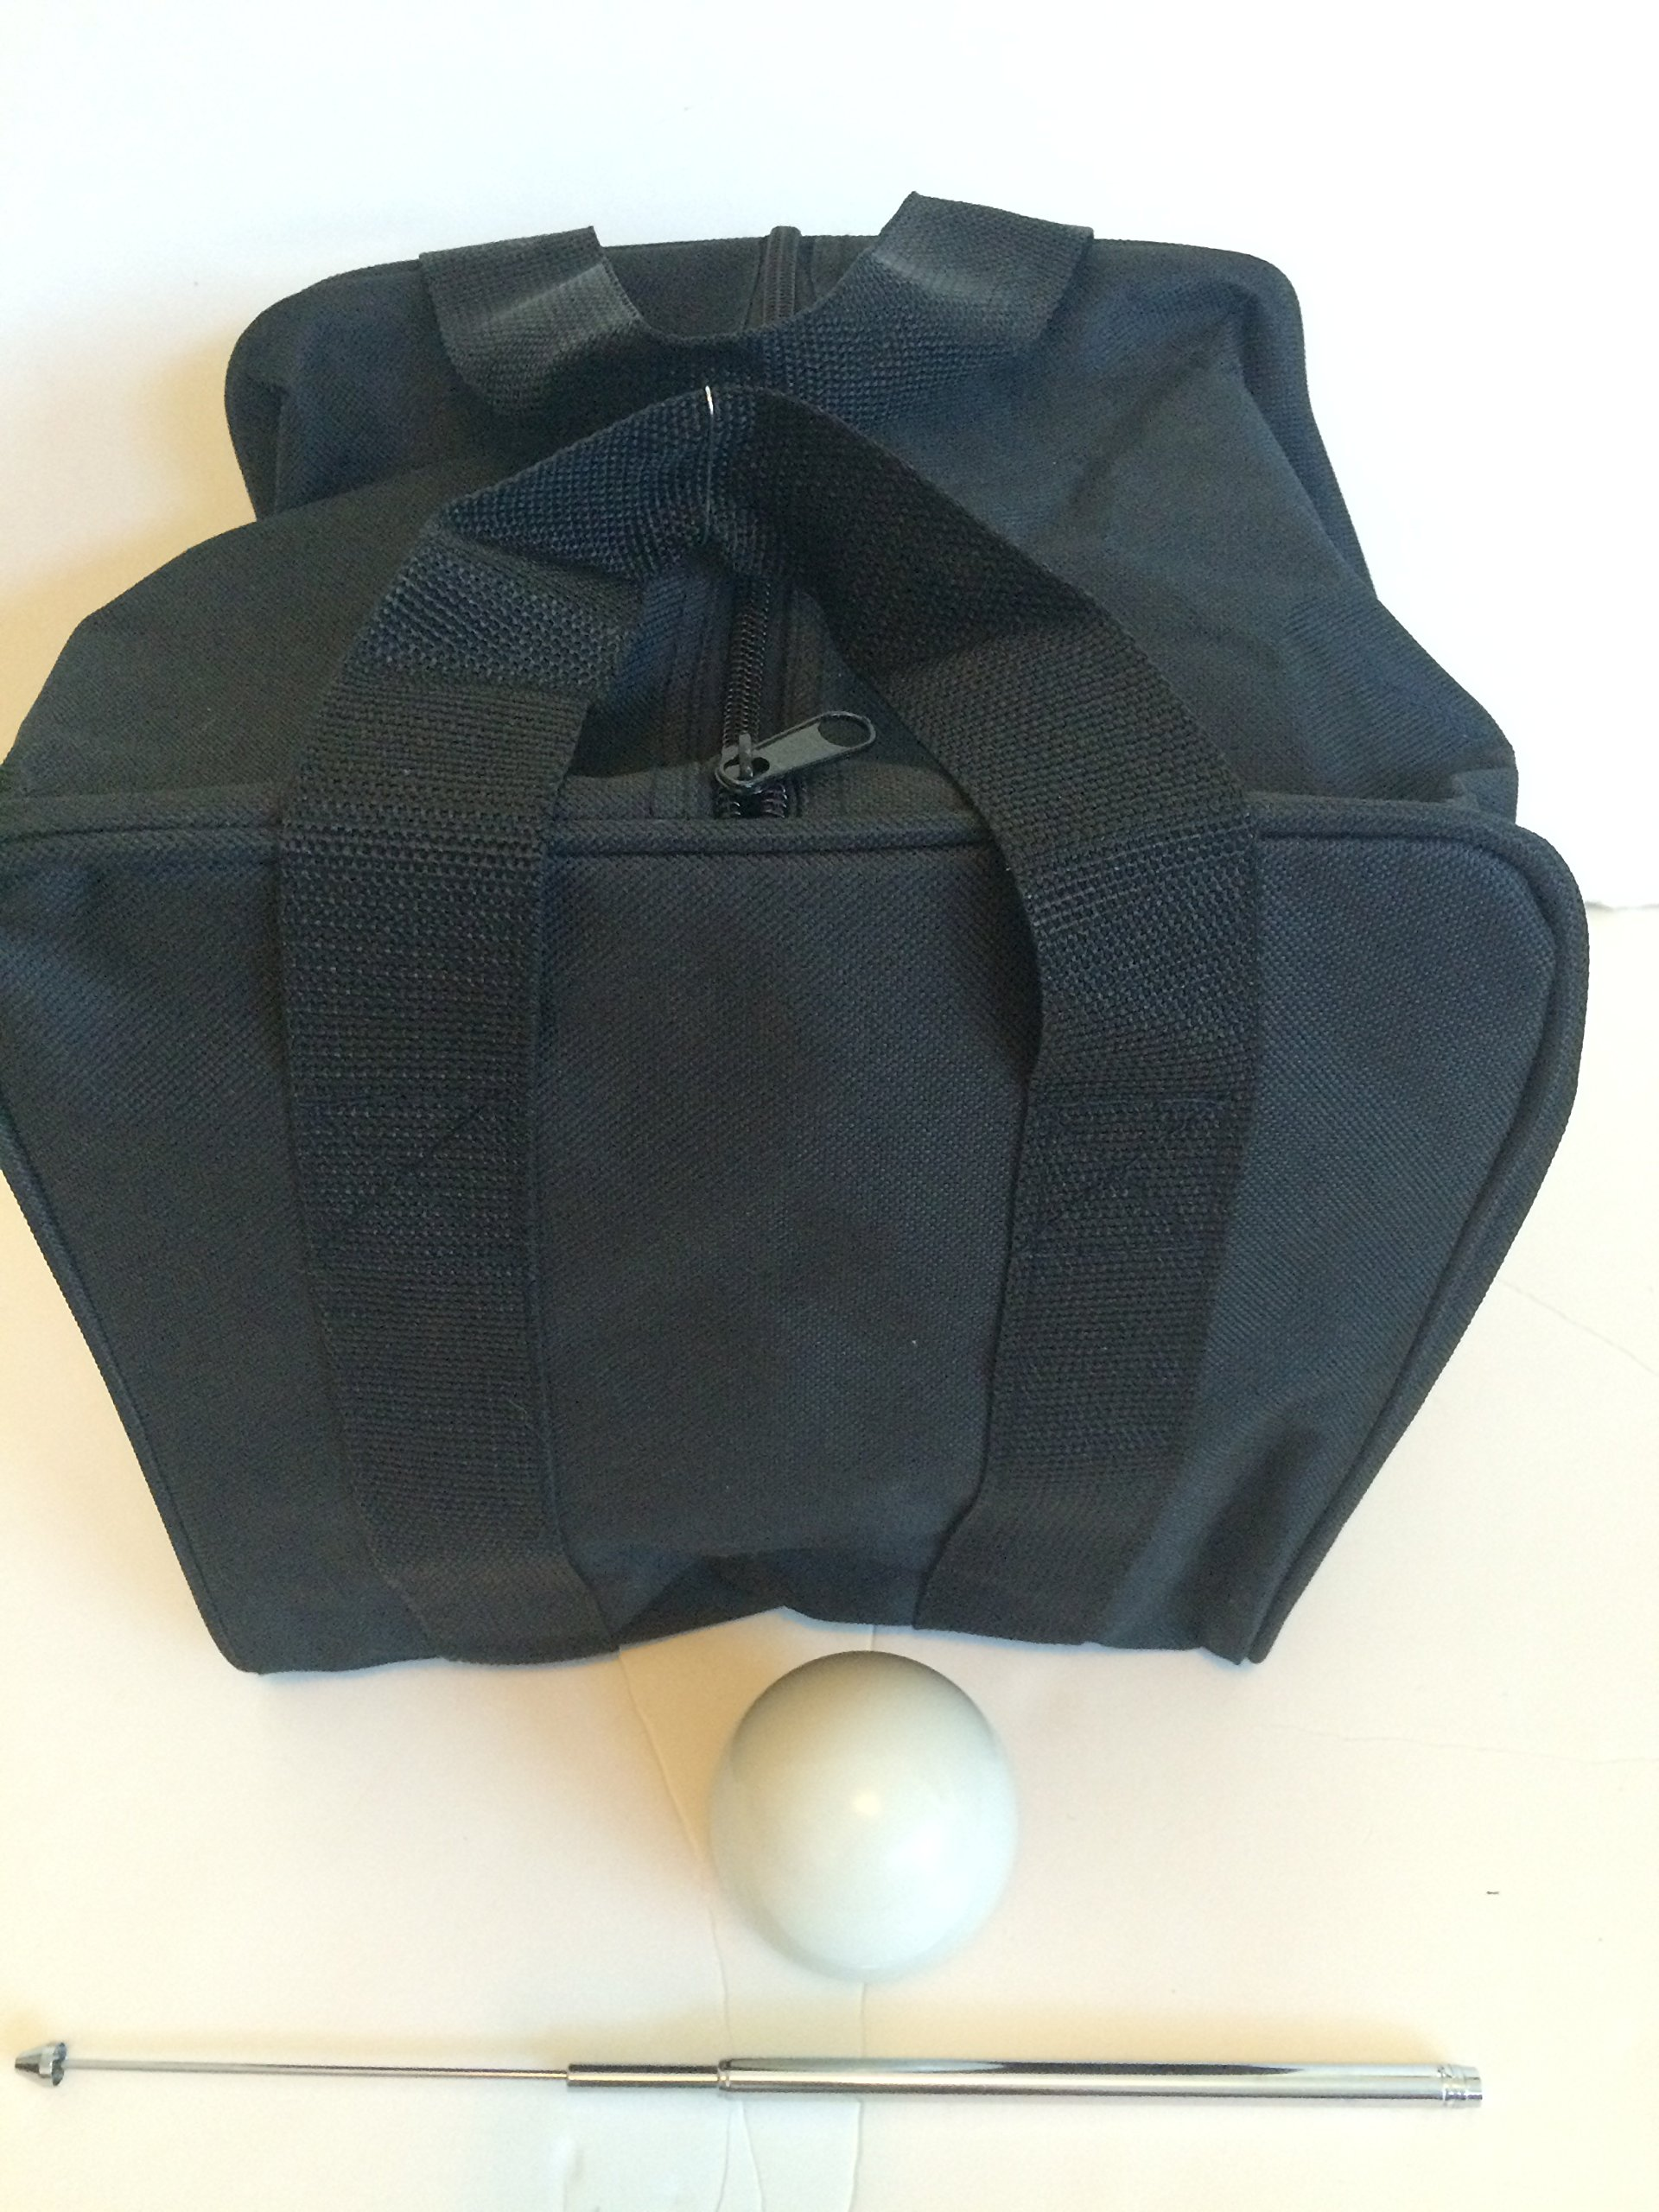 Unique Bocce Accessories Package - Extra Heavy Duty Nylon Bocce Bag (Black with Black Handles), White pallina, Extendable Measuring Device